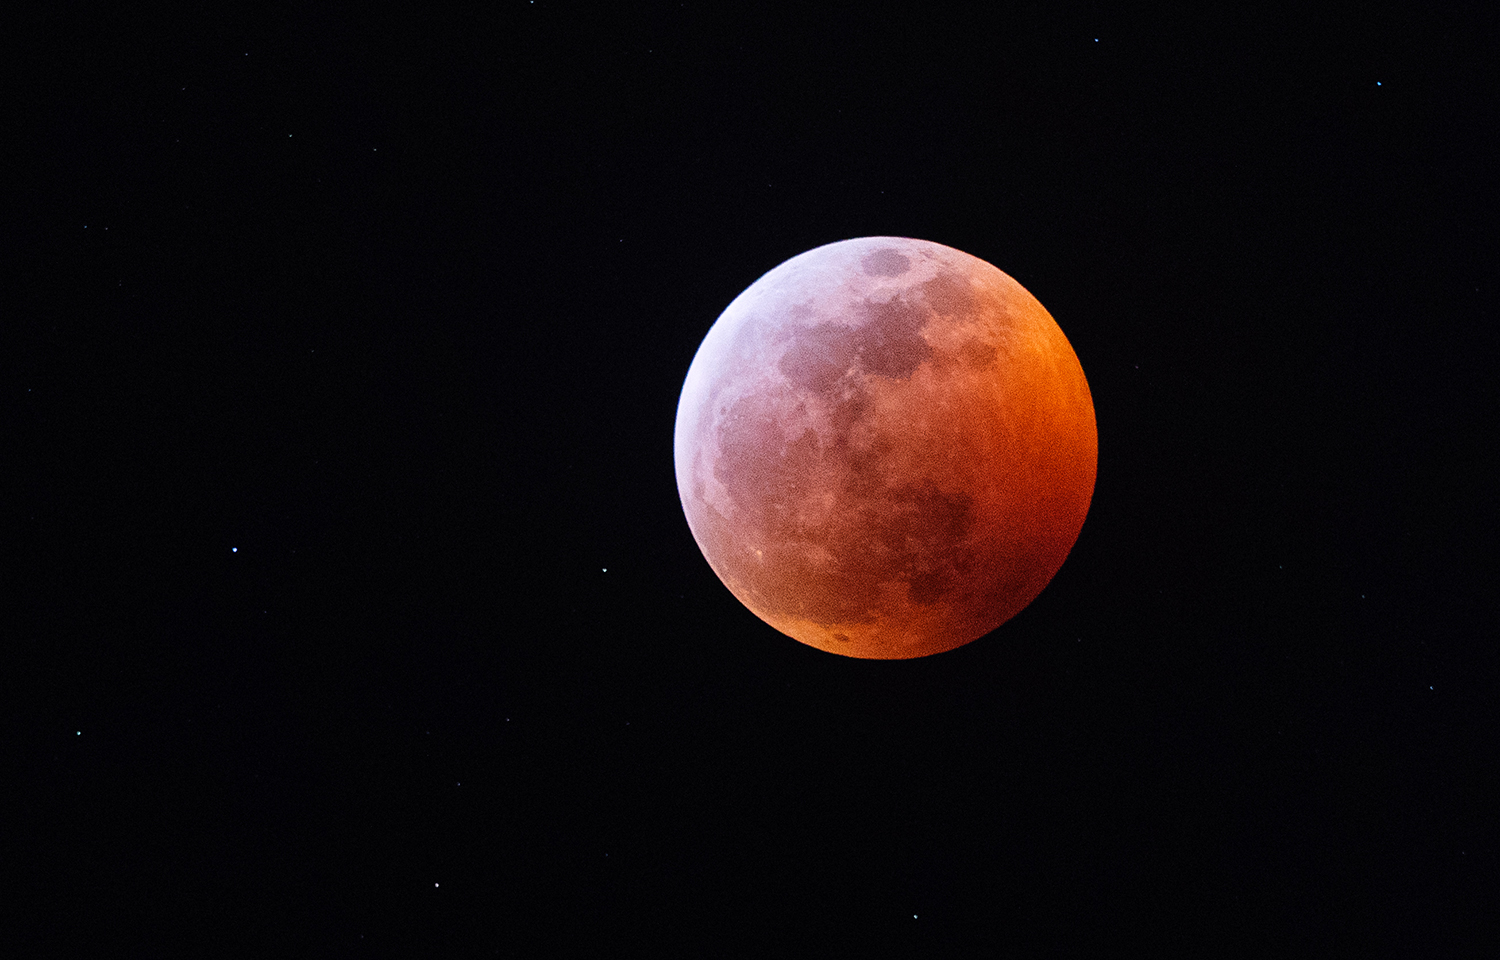 """The shadow of the earth darkens the surface of the moon during a total lunar eclipse Sunday, Jan. 20, 2019. The eclipse coincided with a """"supermoon,"""" when the moon is closer to earth than normal, and is also called a """"blood moon"""" due to the color imparted by the eclipse. [Ted Schurter/The State Journal-Register]"""